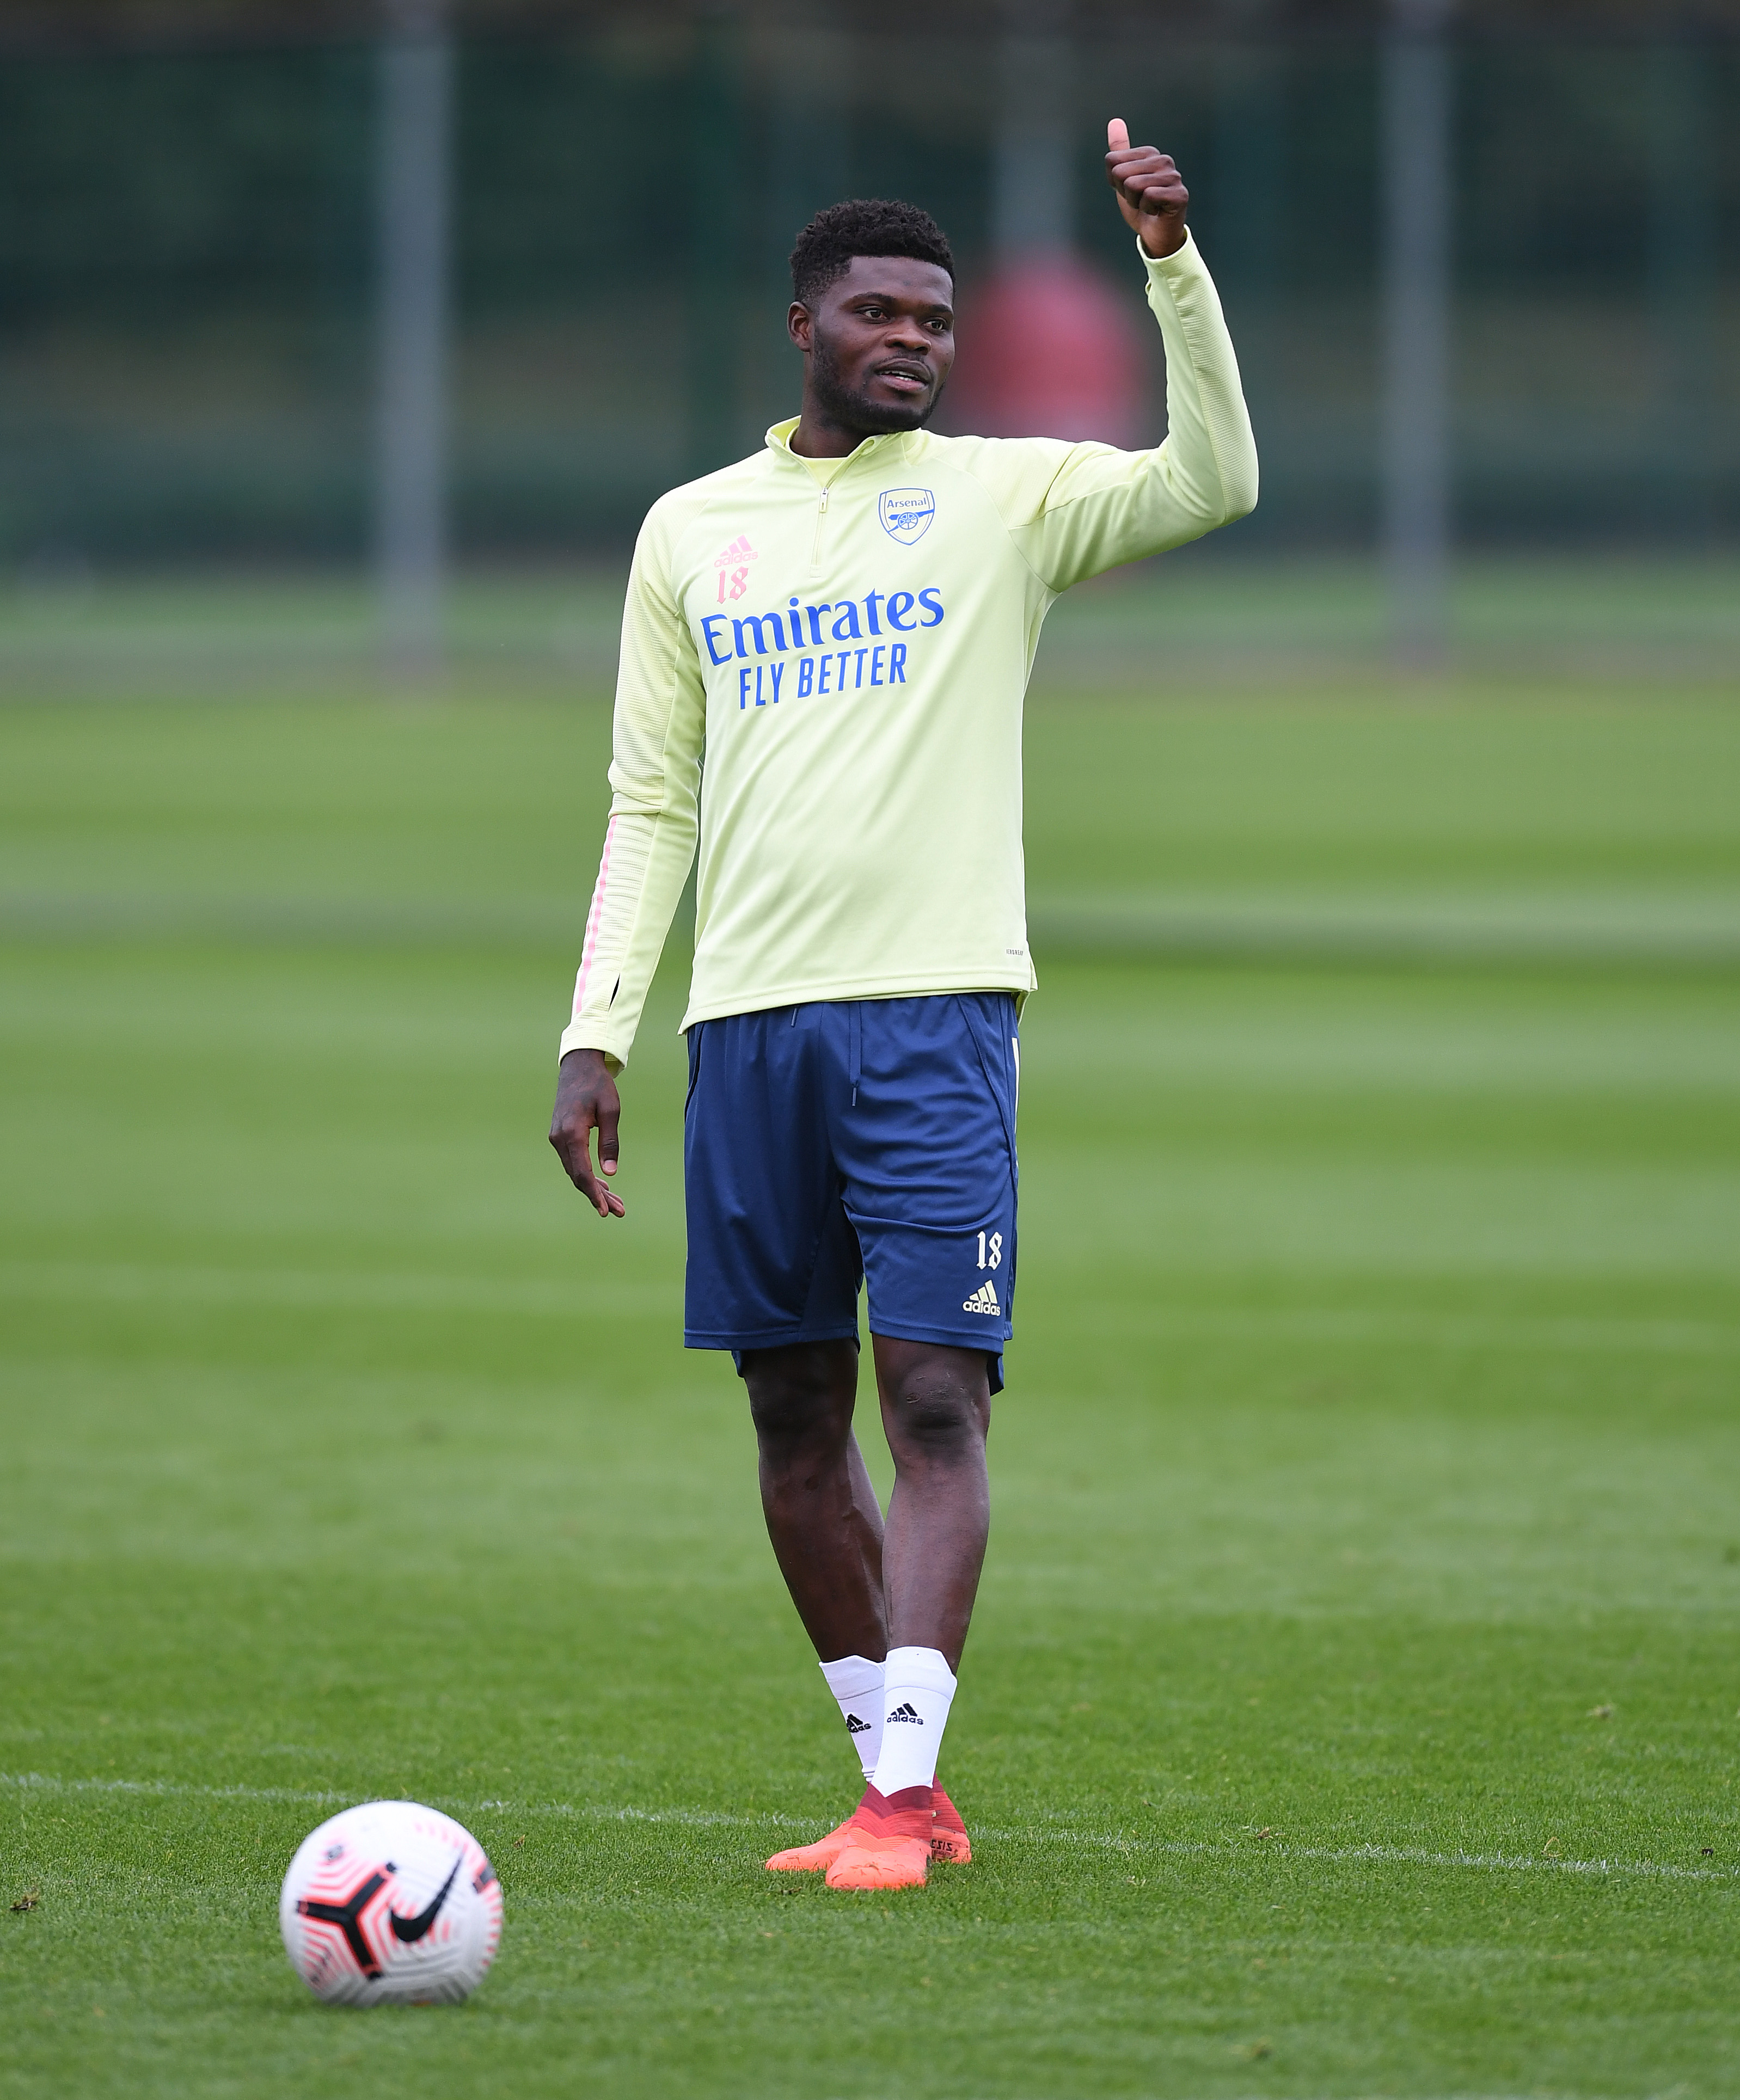 PITCURES: Partey trains with Arsenal ahead of Manchester City clash